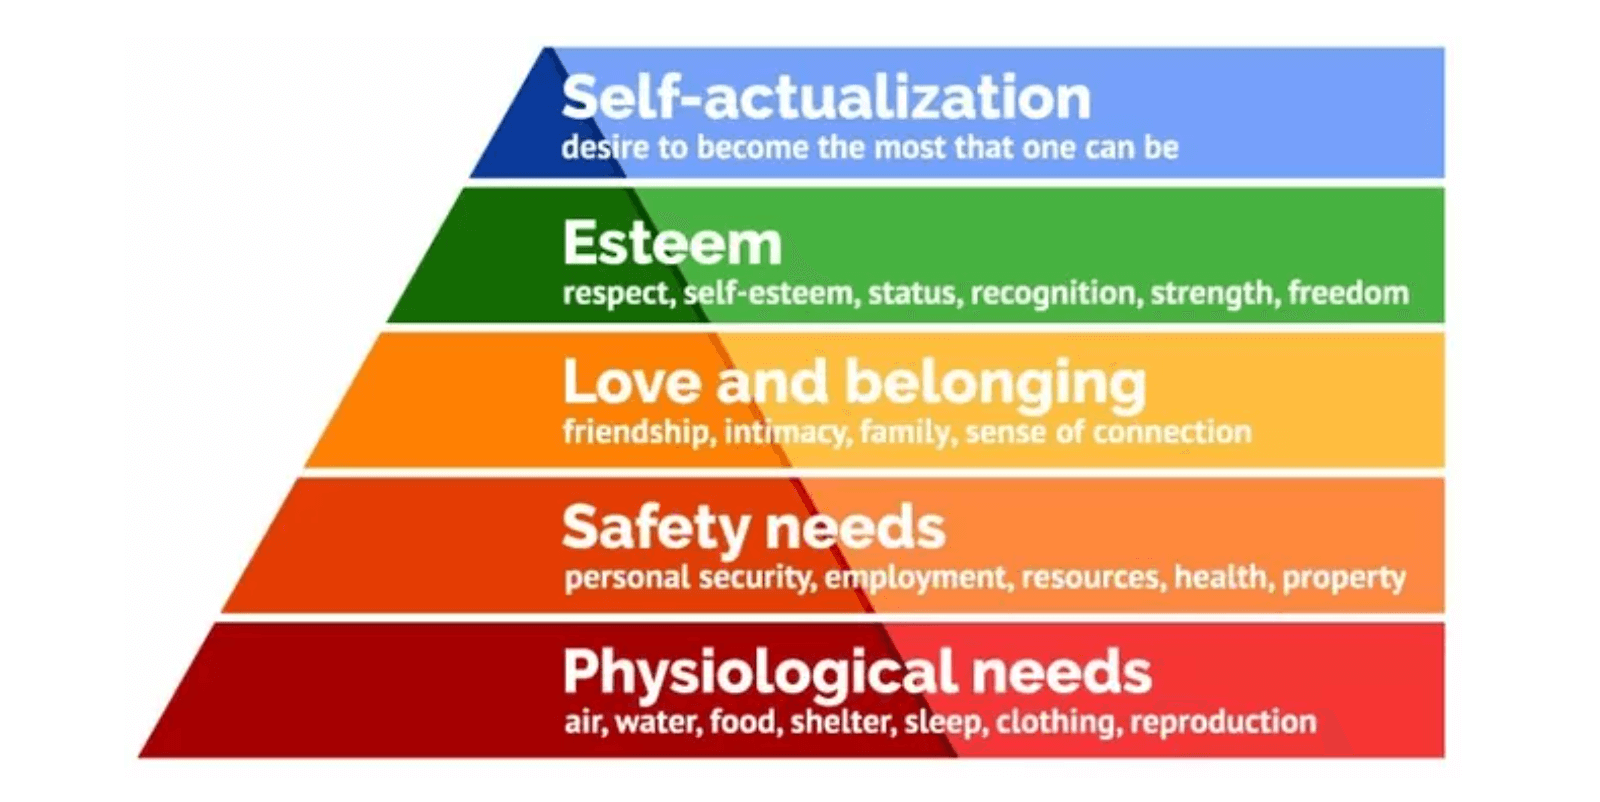 Recession proof business: Maslow's Hierarchy of Needs (image from https://www.simplypsychology.org/maslow.html)